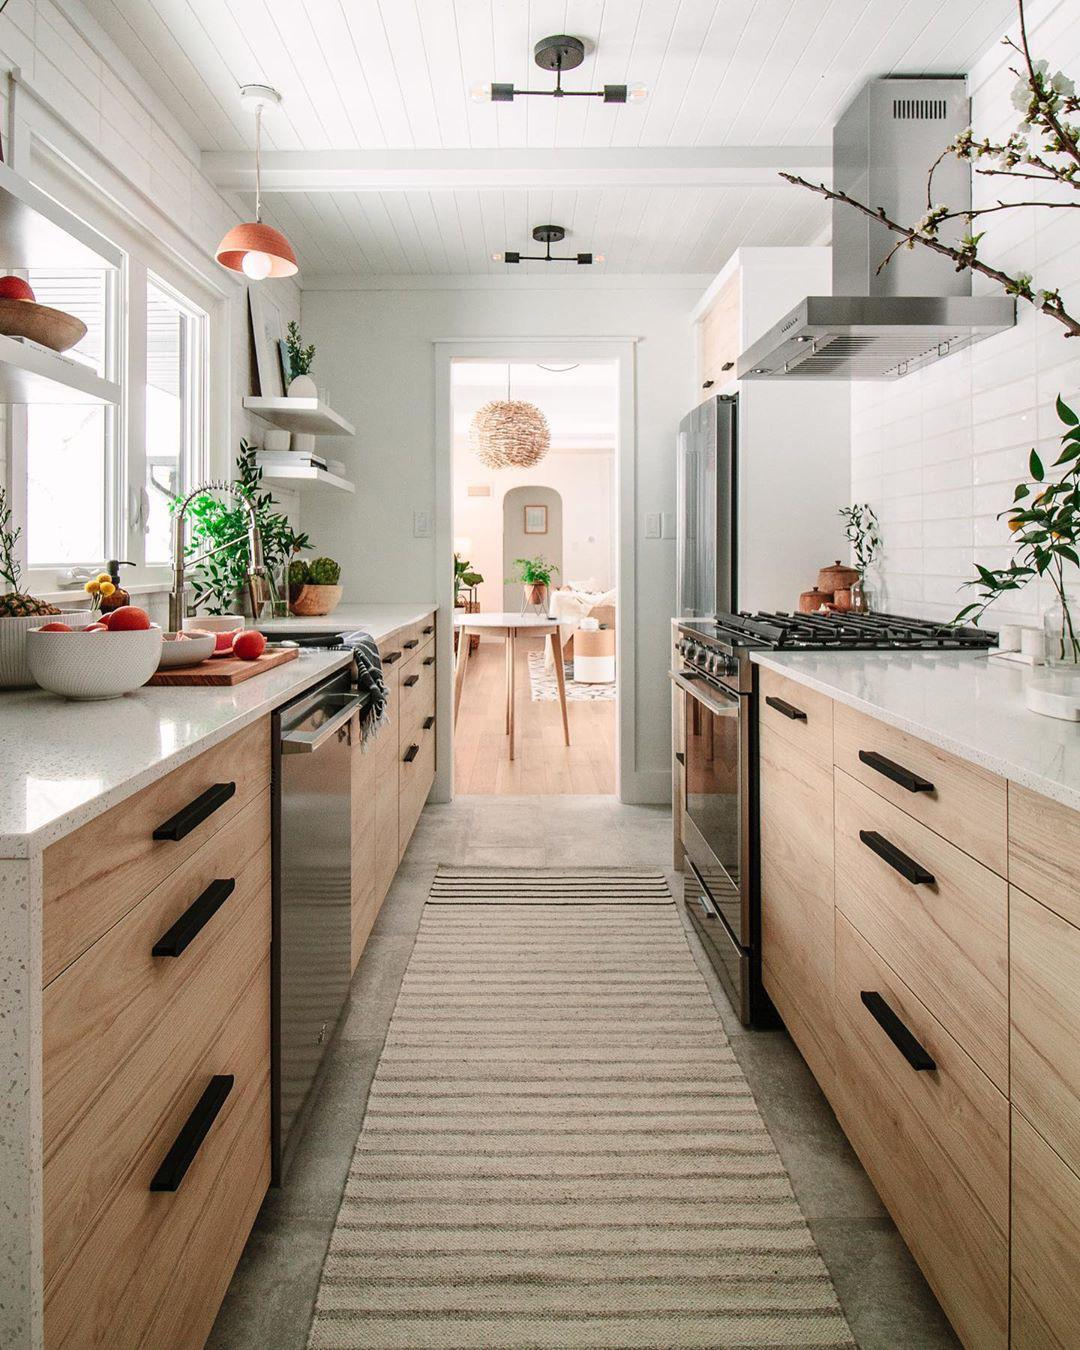 Inspiring Kitchen Design Ideas For Your Home - Page 30 of 35 - Liatsy Fashion